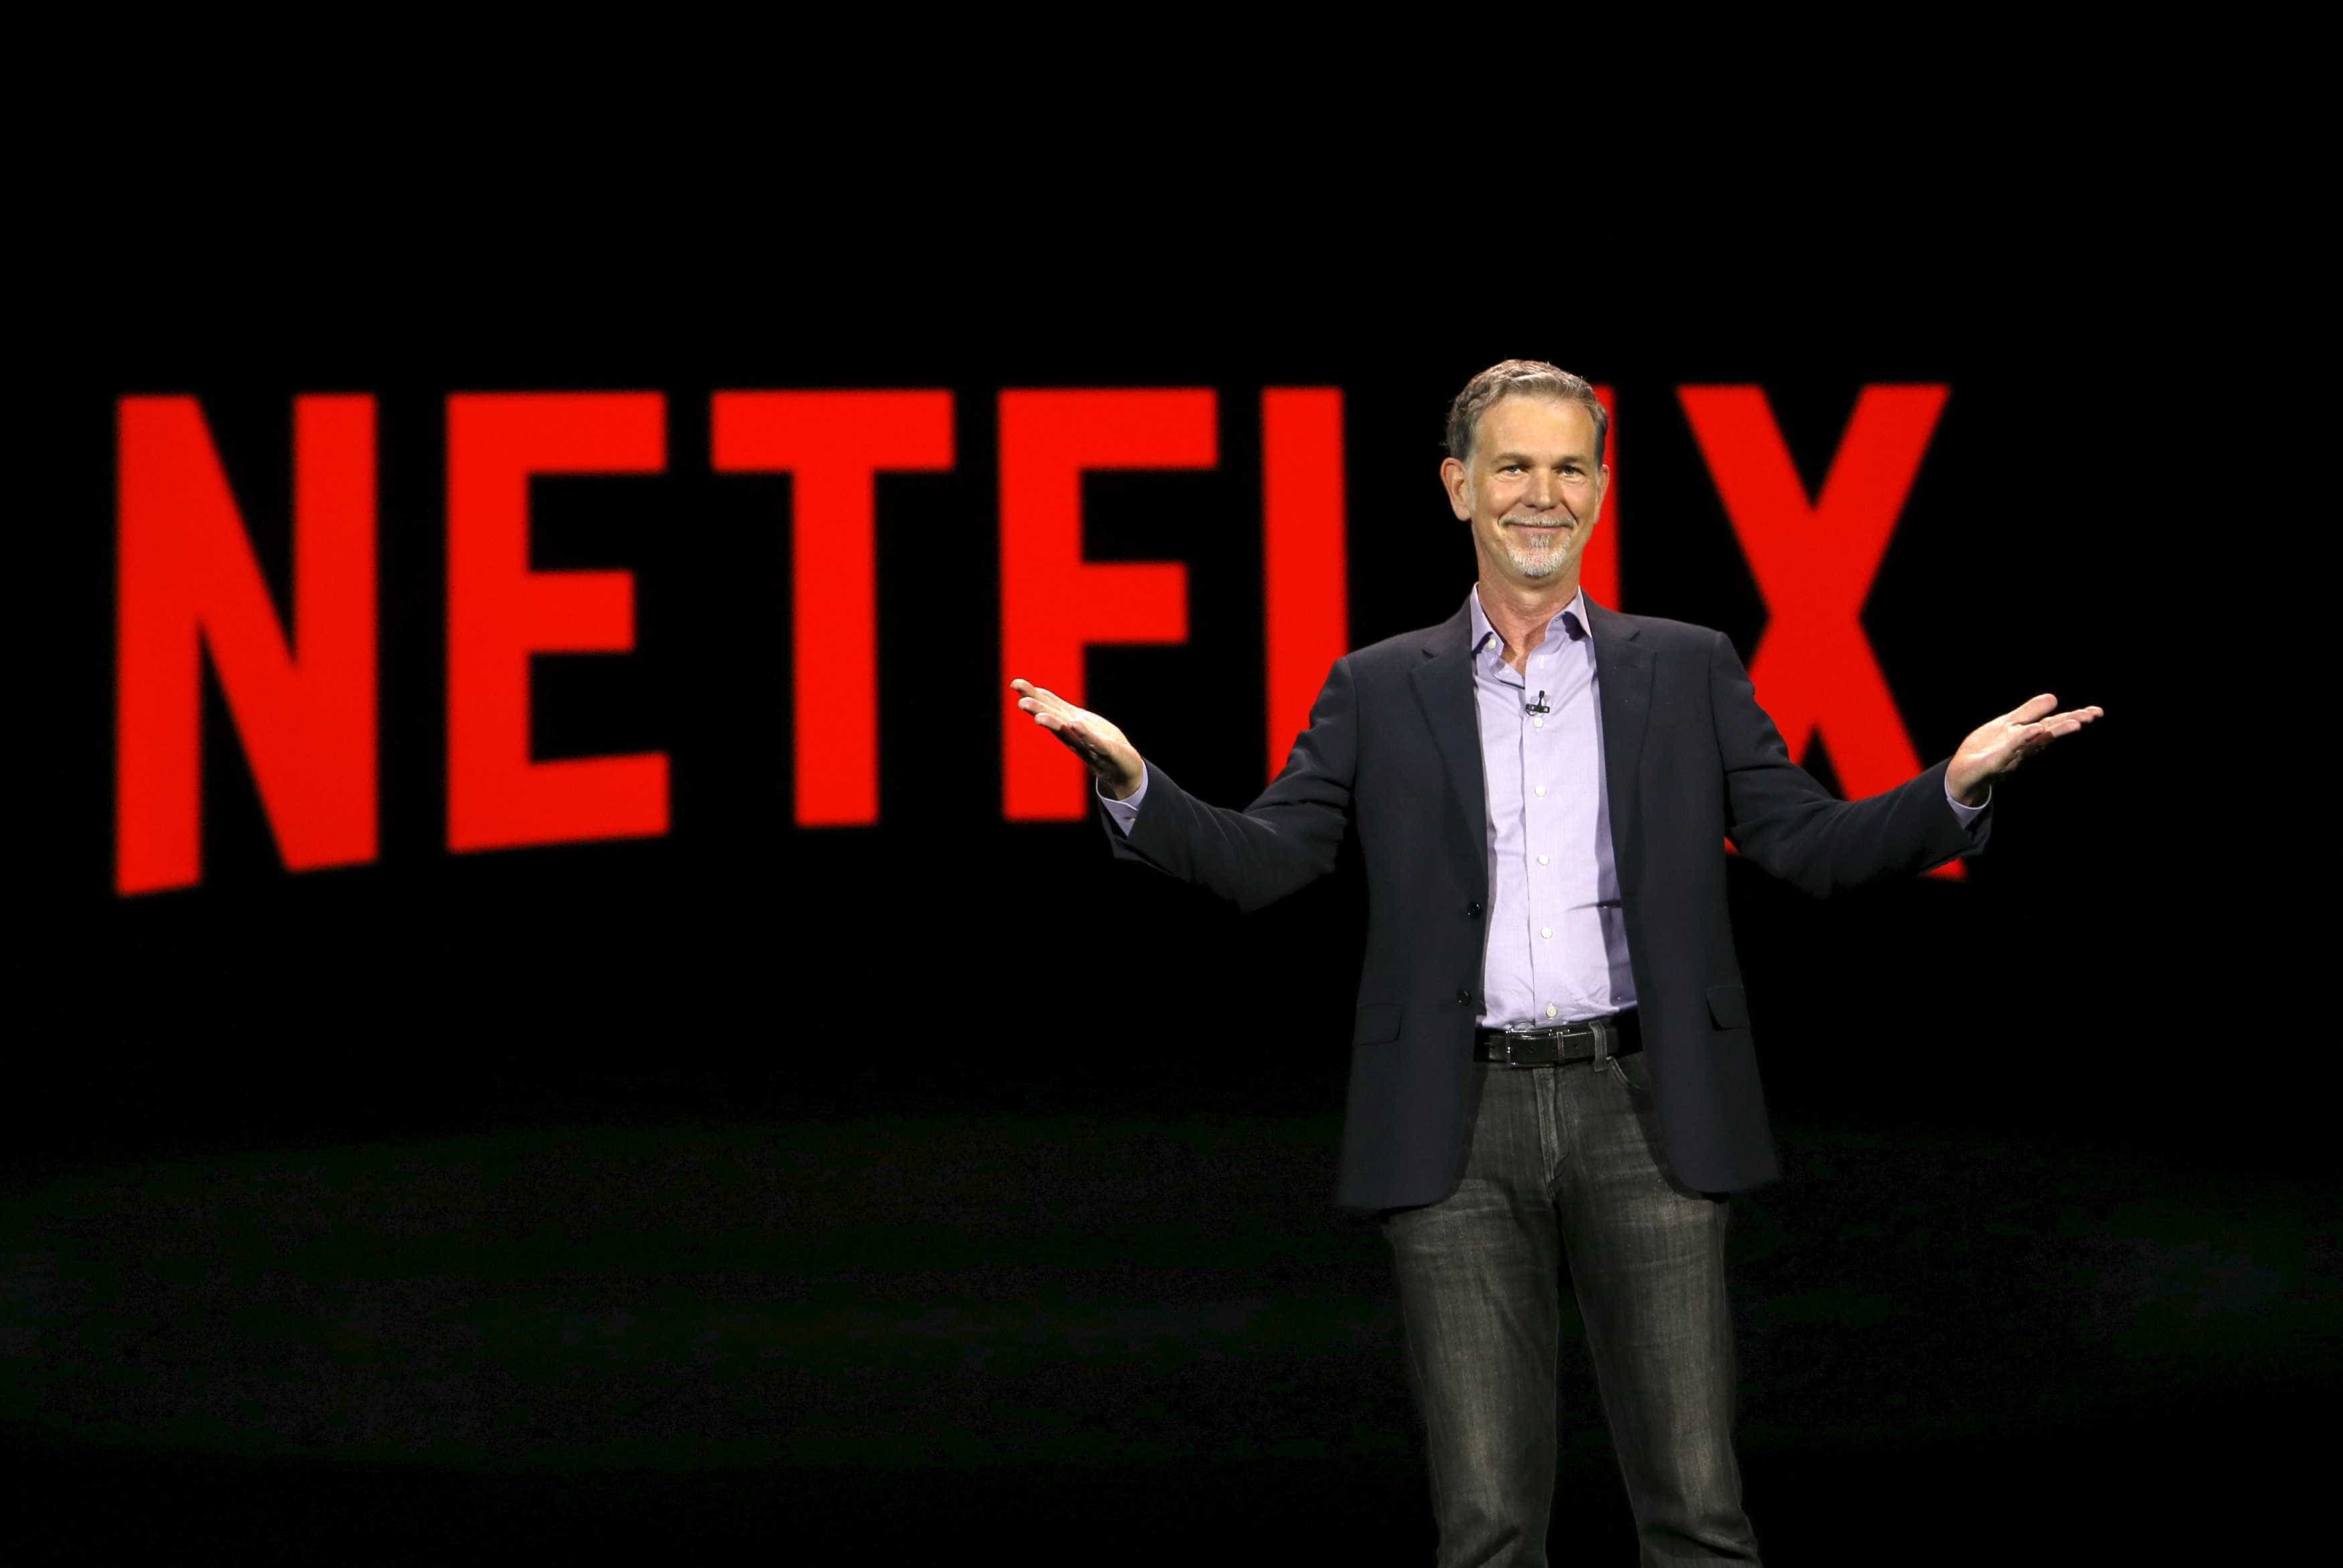 Netflix deu 'nega' à Apple